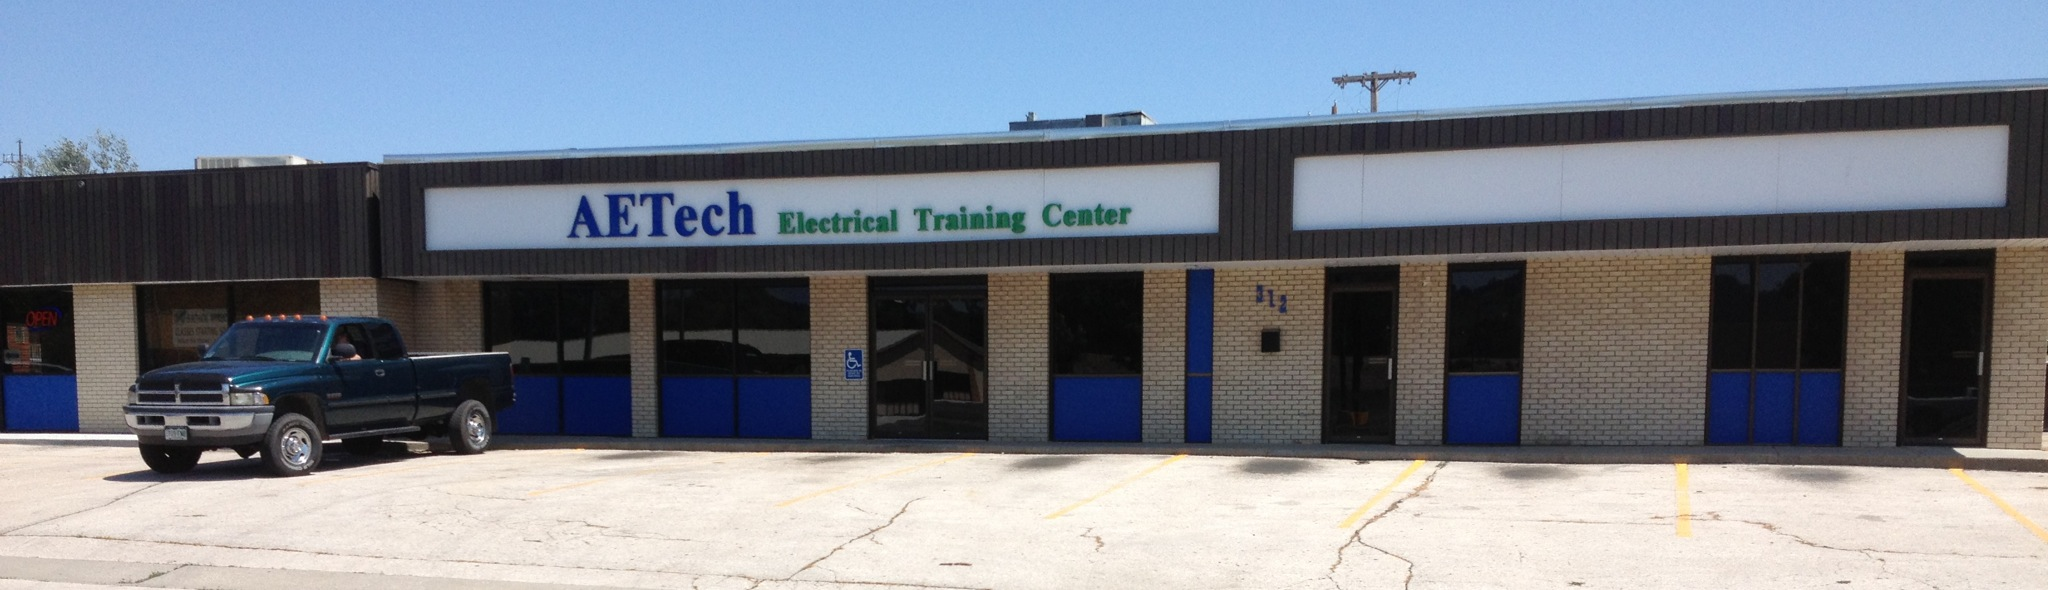 Aetech Electrical Training Center